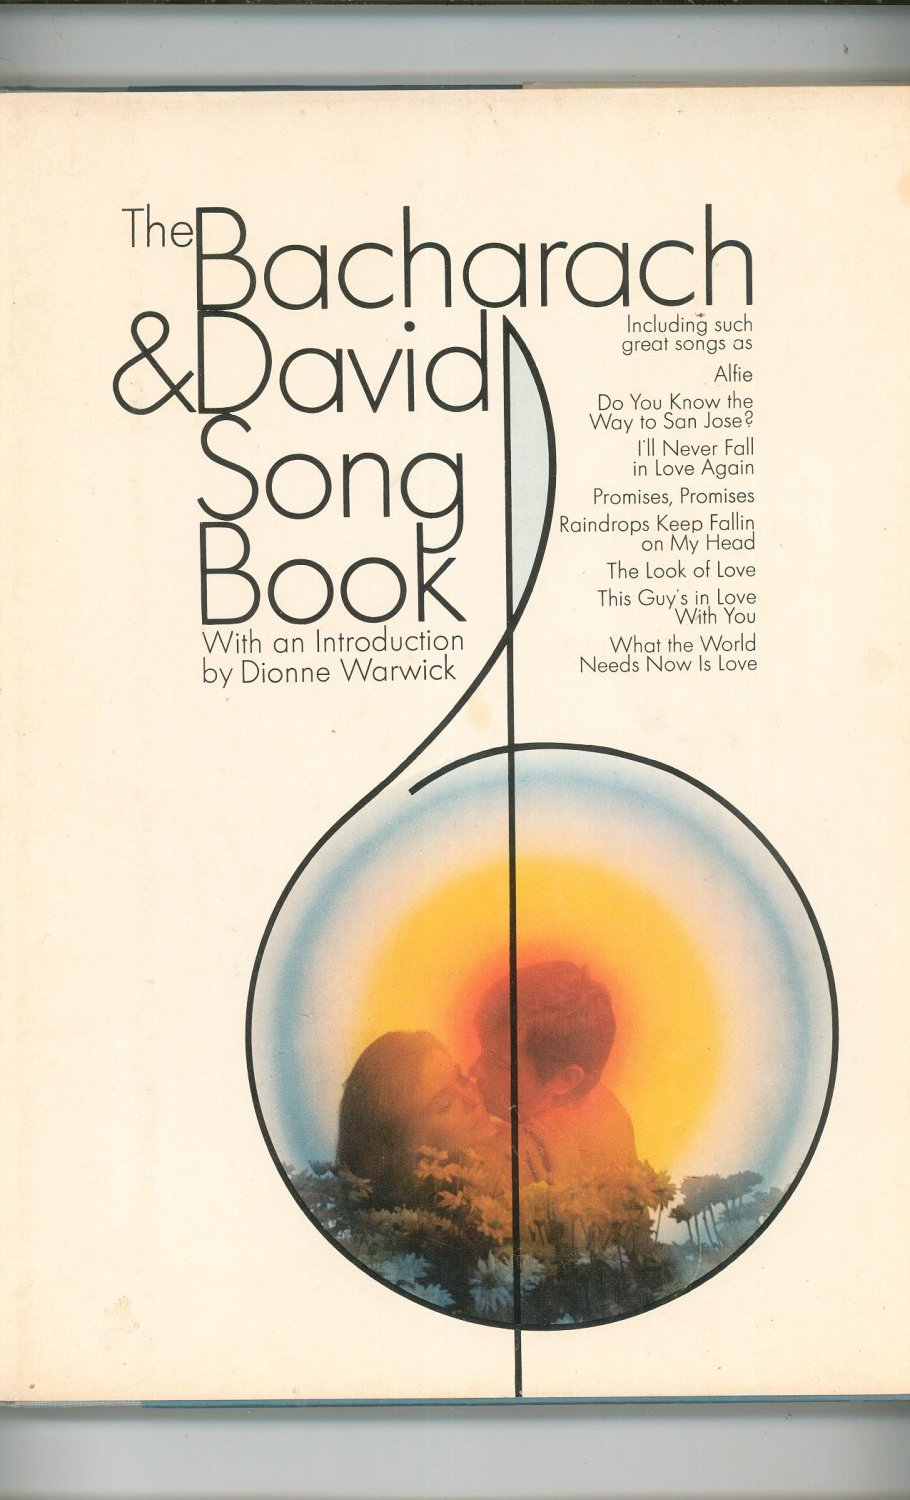 The Bacharach & David Songbook Song Book Dionne Warwick 671204947 Vintage Piano Guitar